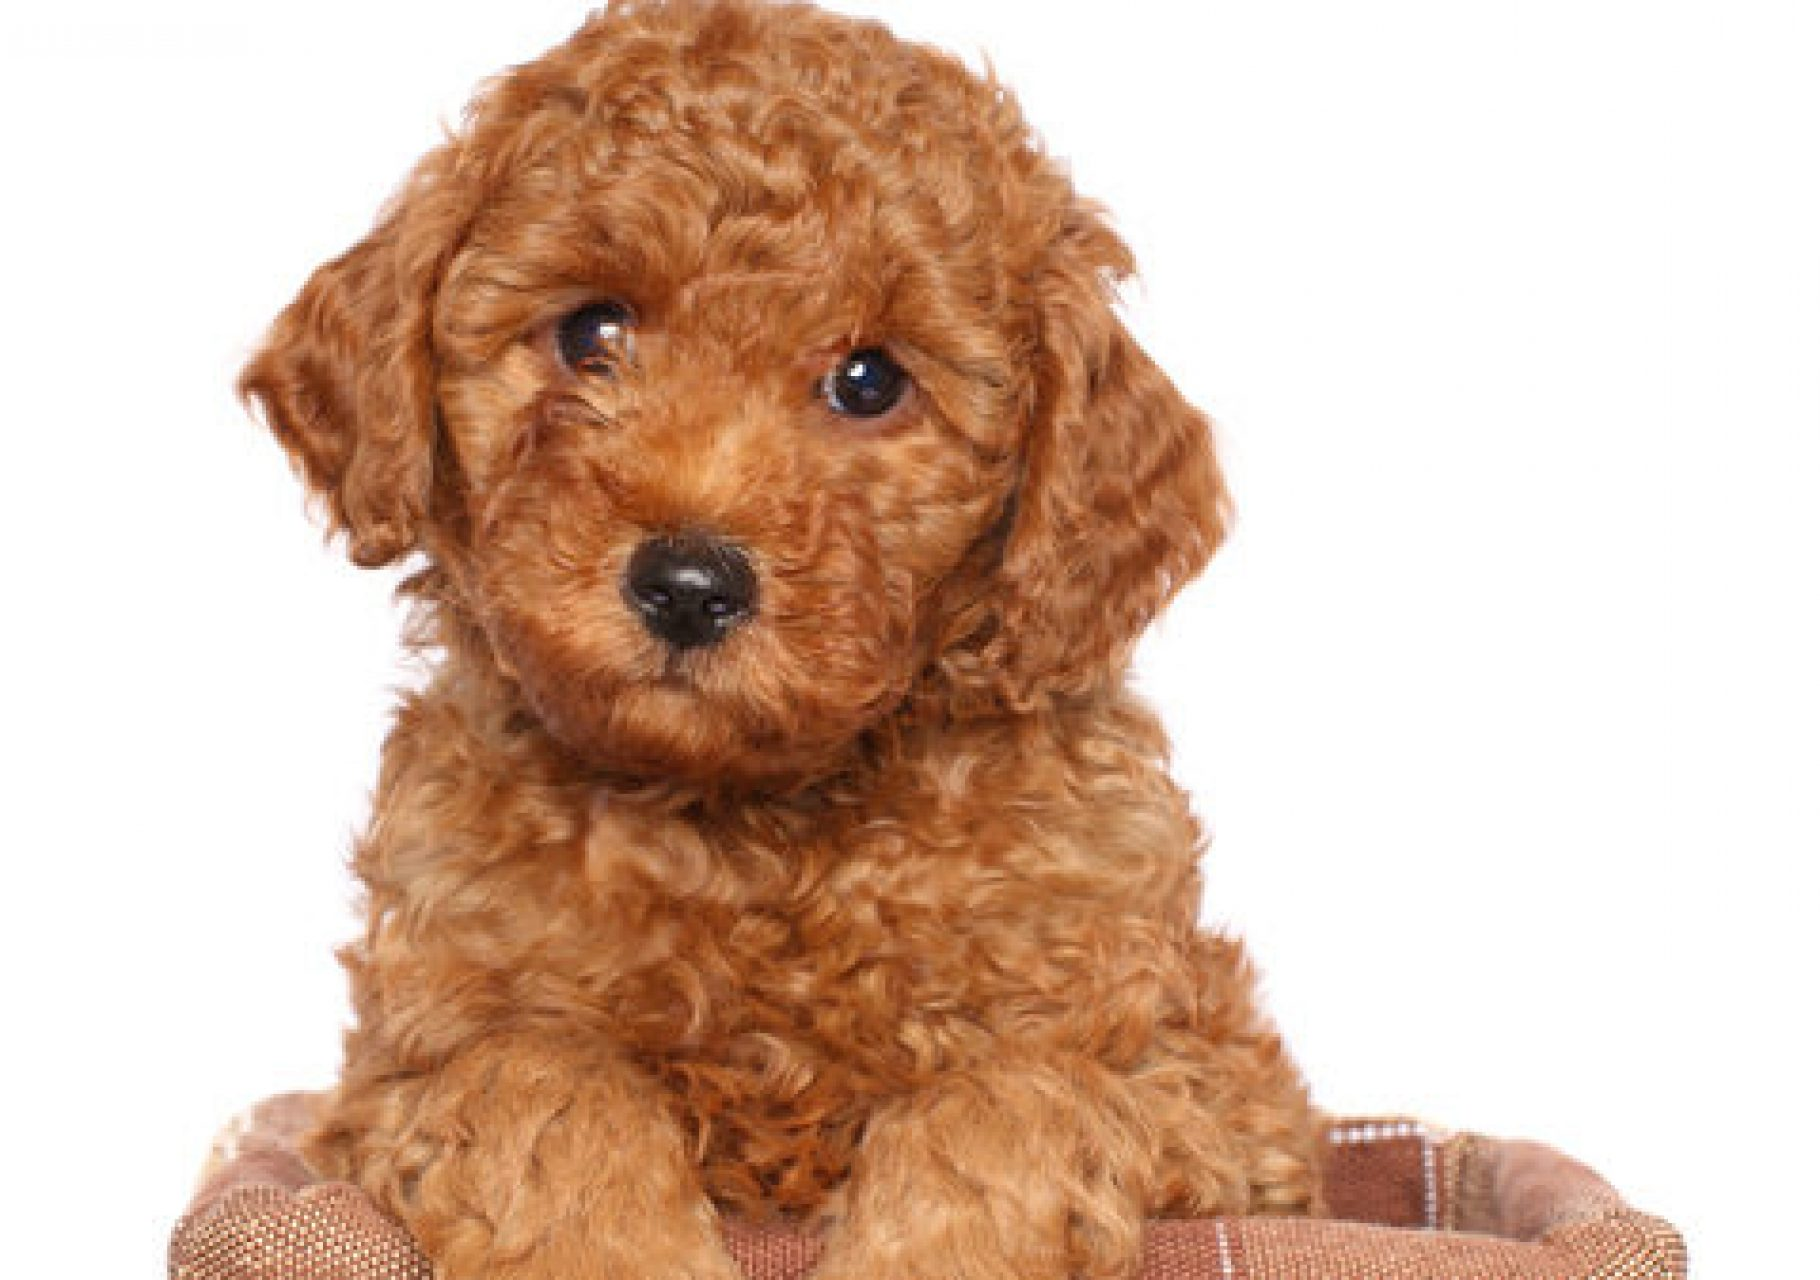 Red toy poodle puppy (two month) sits in wicker basket on a white background (Red toy poodle puppy